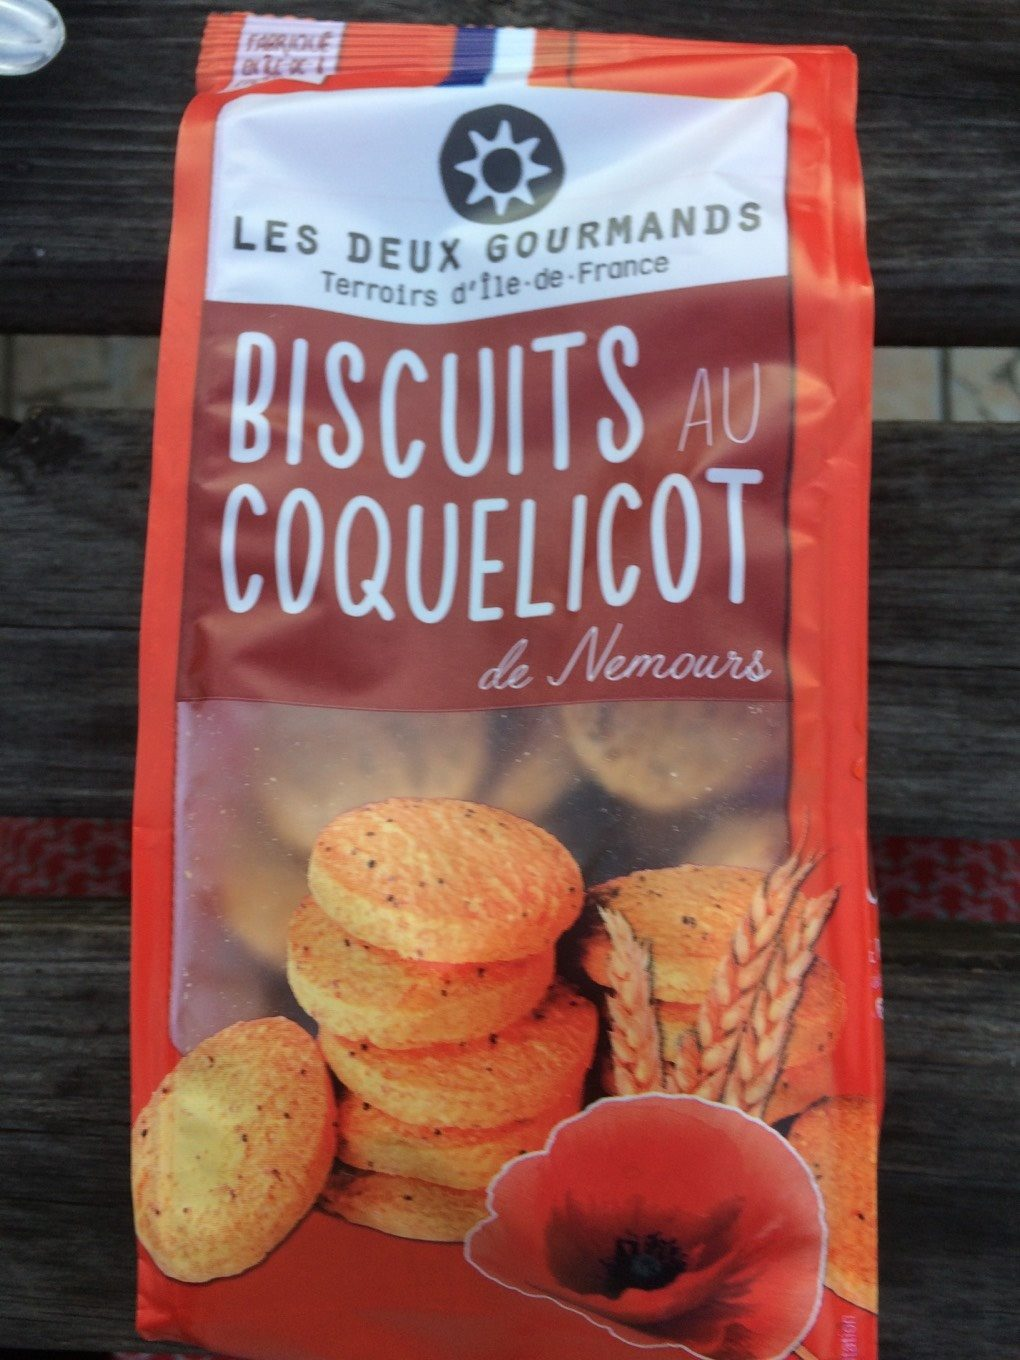 Biscuits au coquelicot - Product - fr